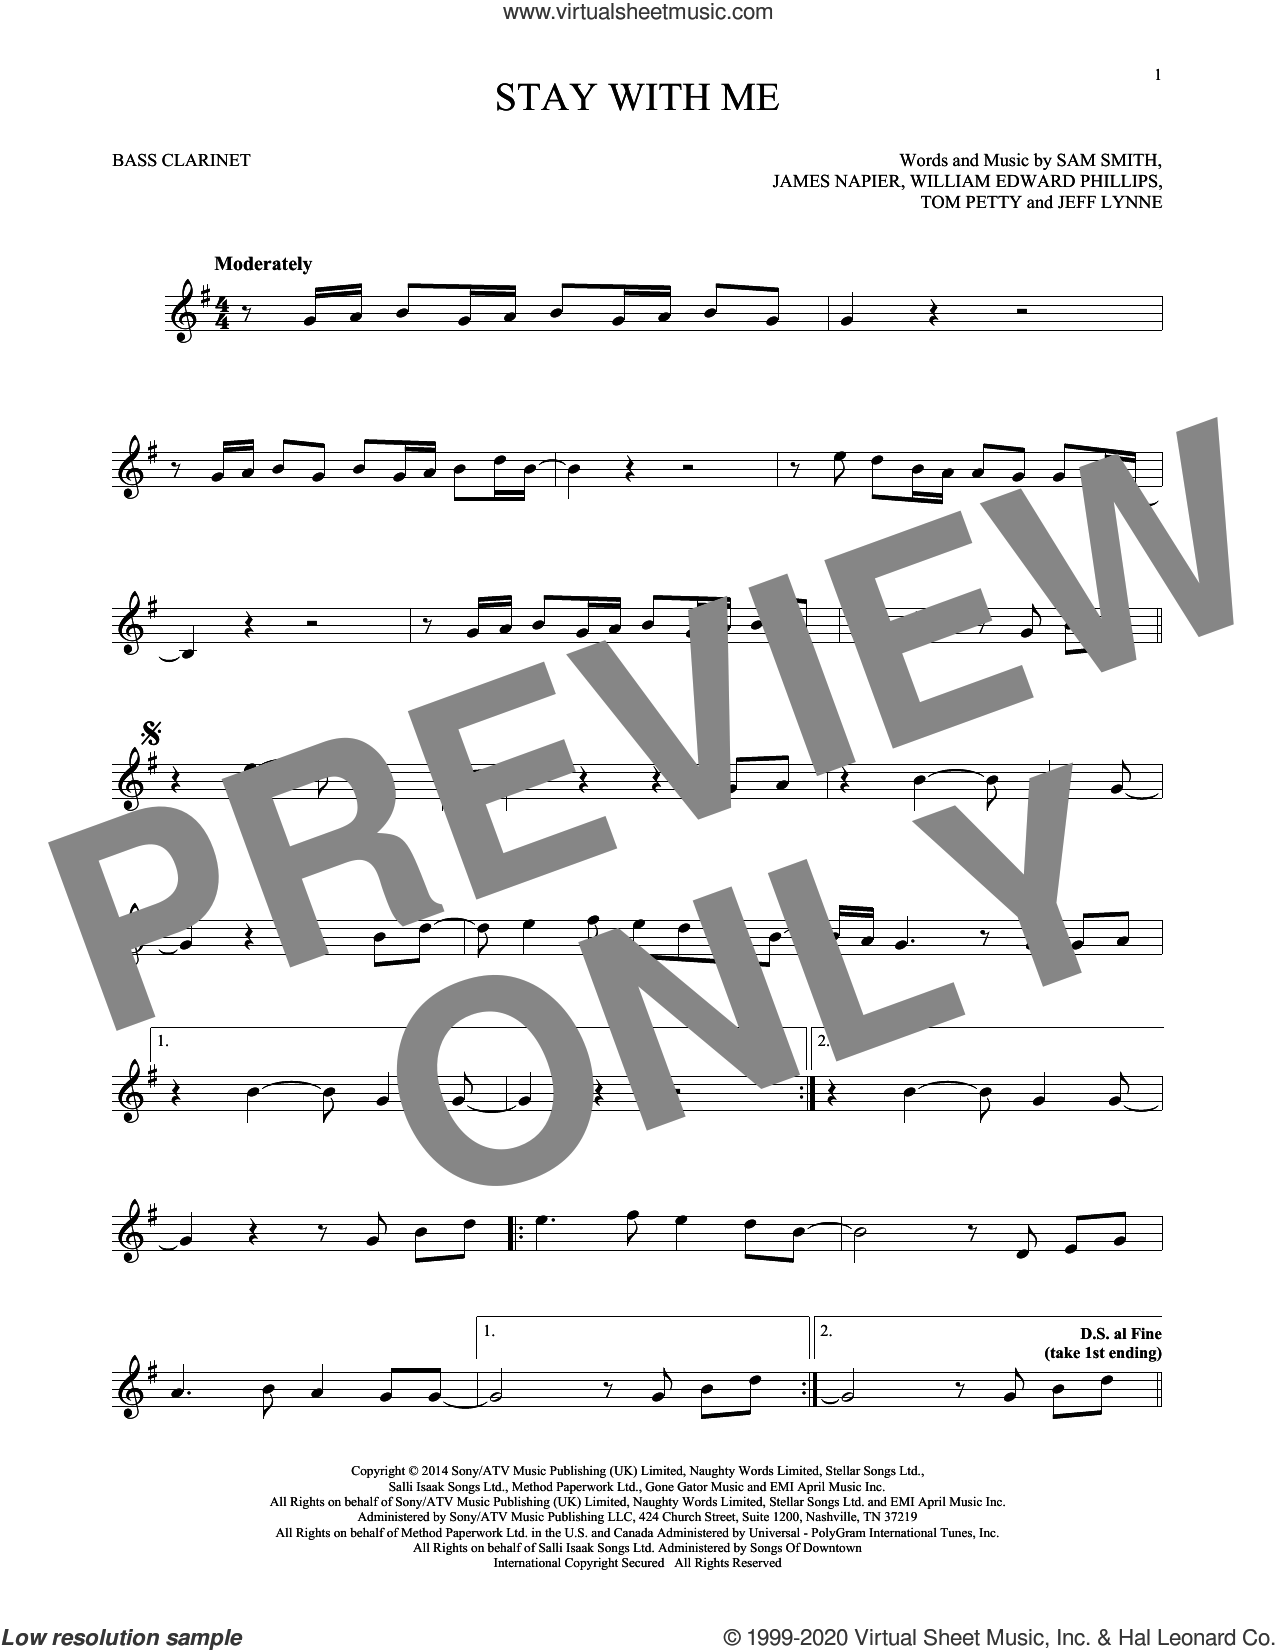 Stay With Me sheet music for Bass Clarinet Solo (clarinetto basso) by Sam Smith, James Napier, Jeff Lynne, Tom Petty and William Edward Phillips, intermediate skill level